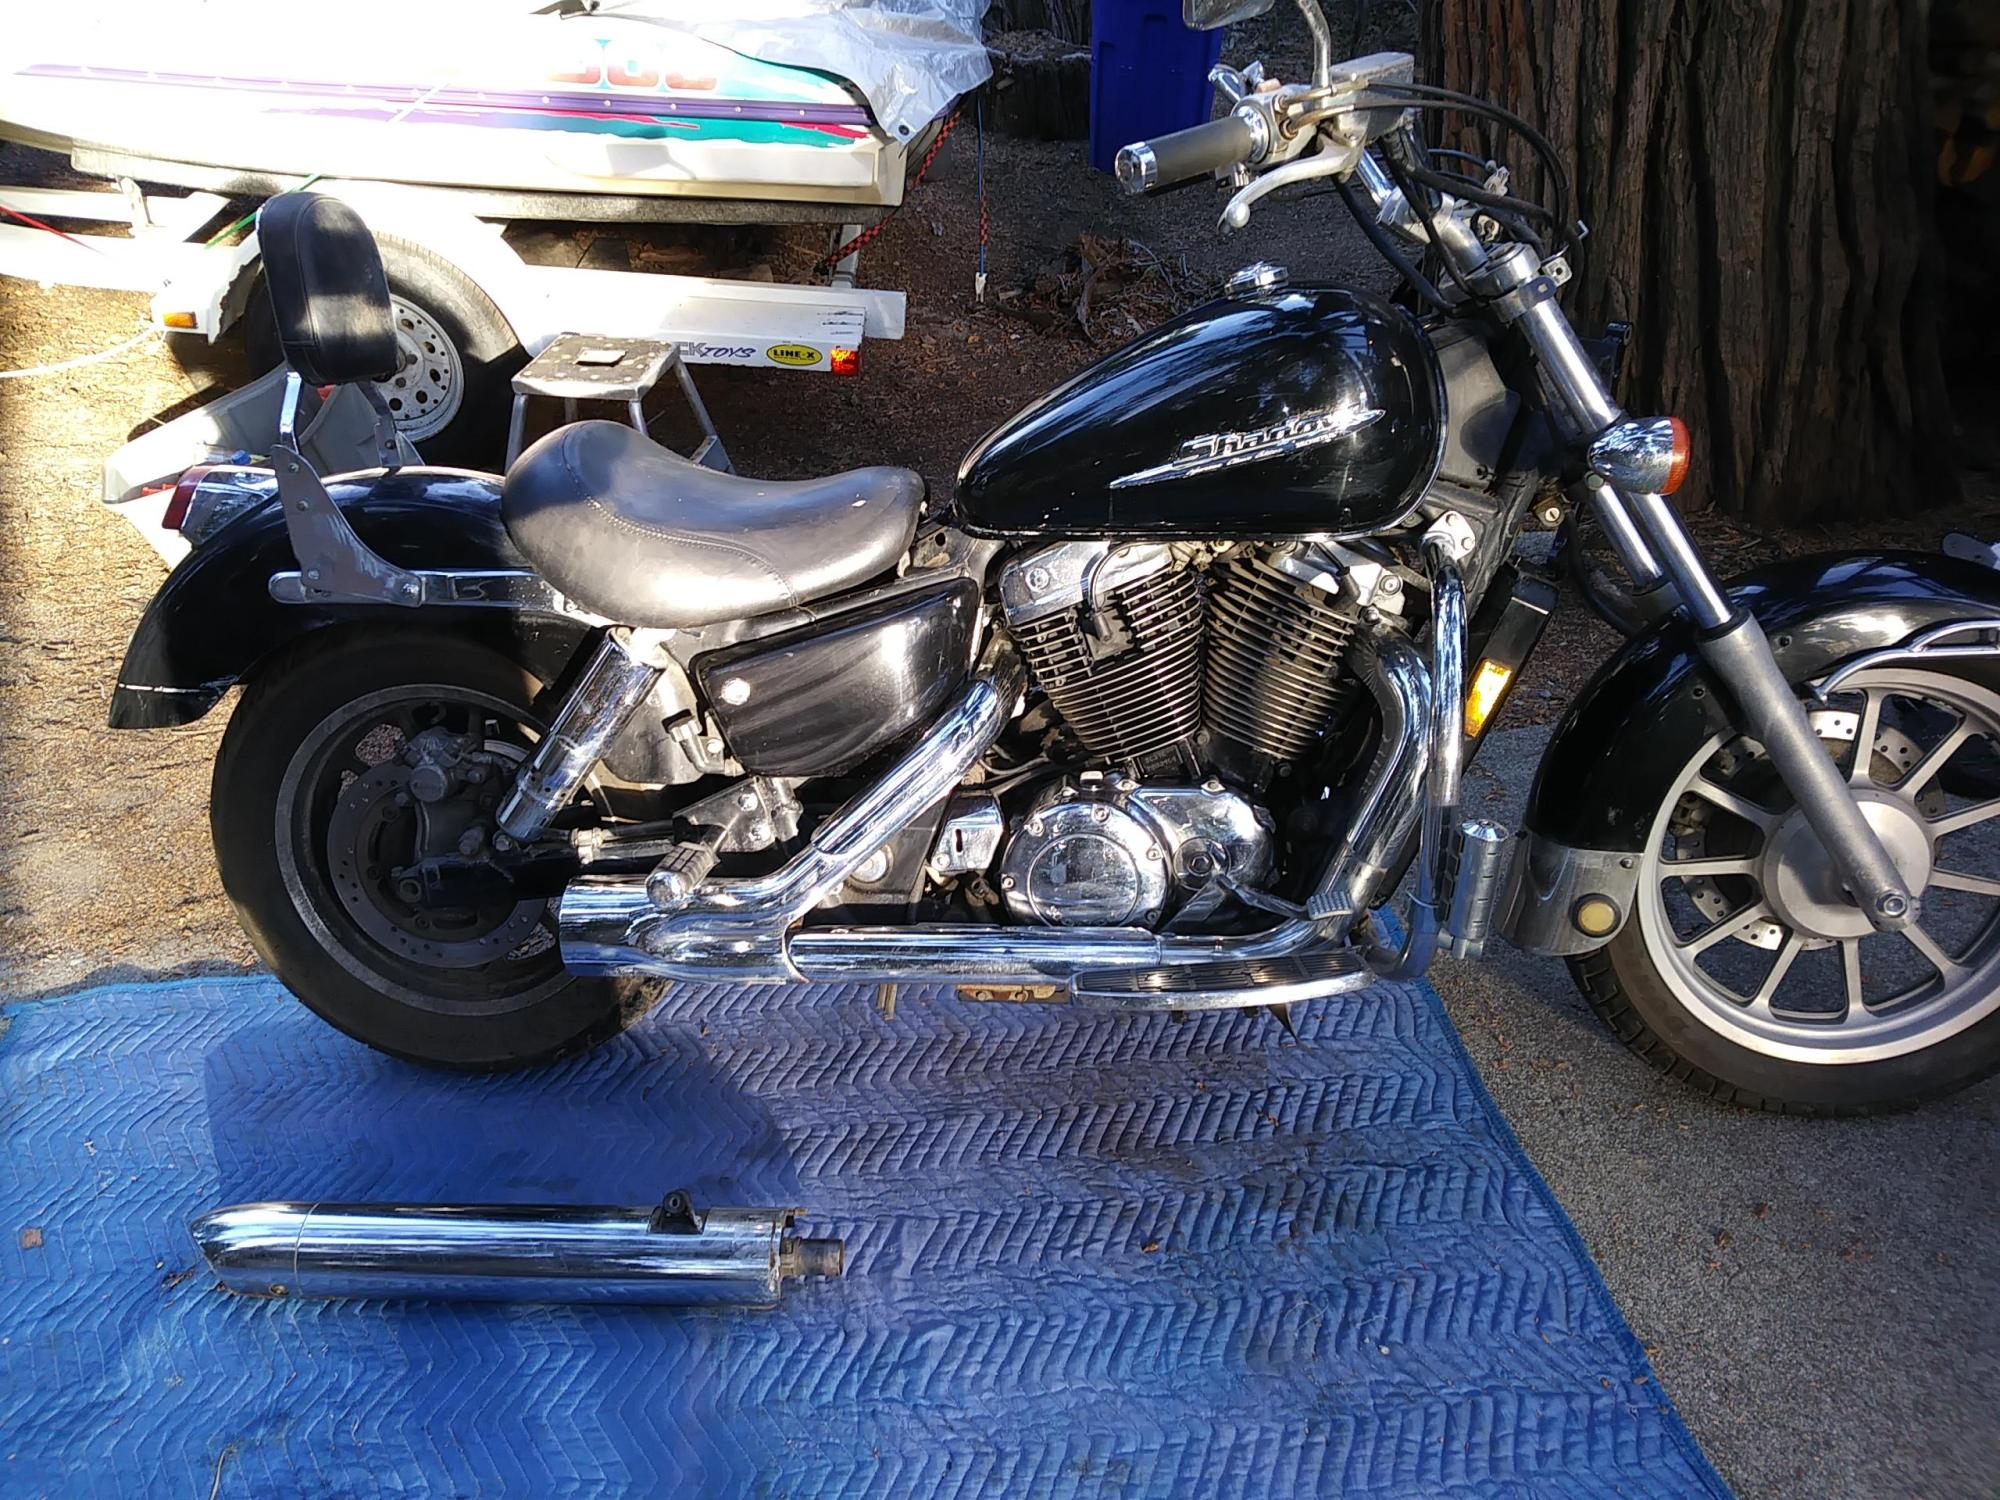 hight resolution of which honda shadow model is this its a 1998 1100